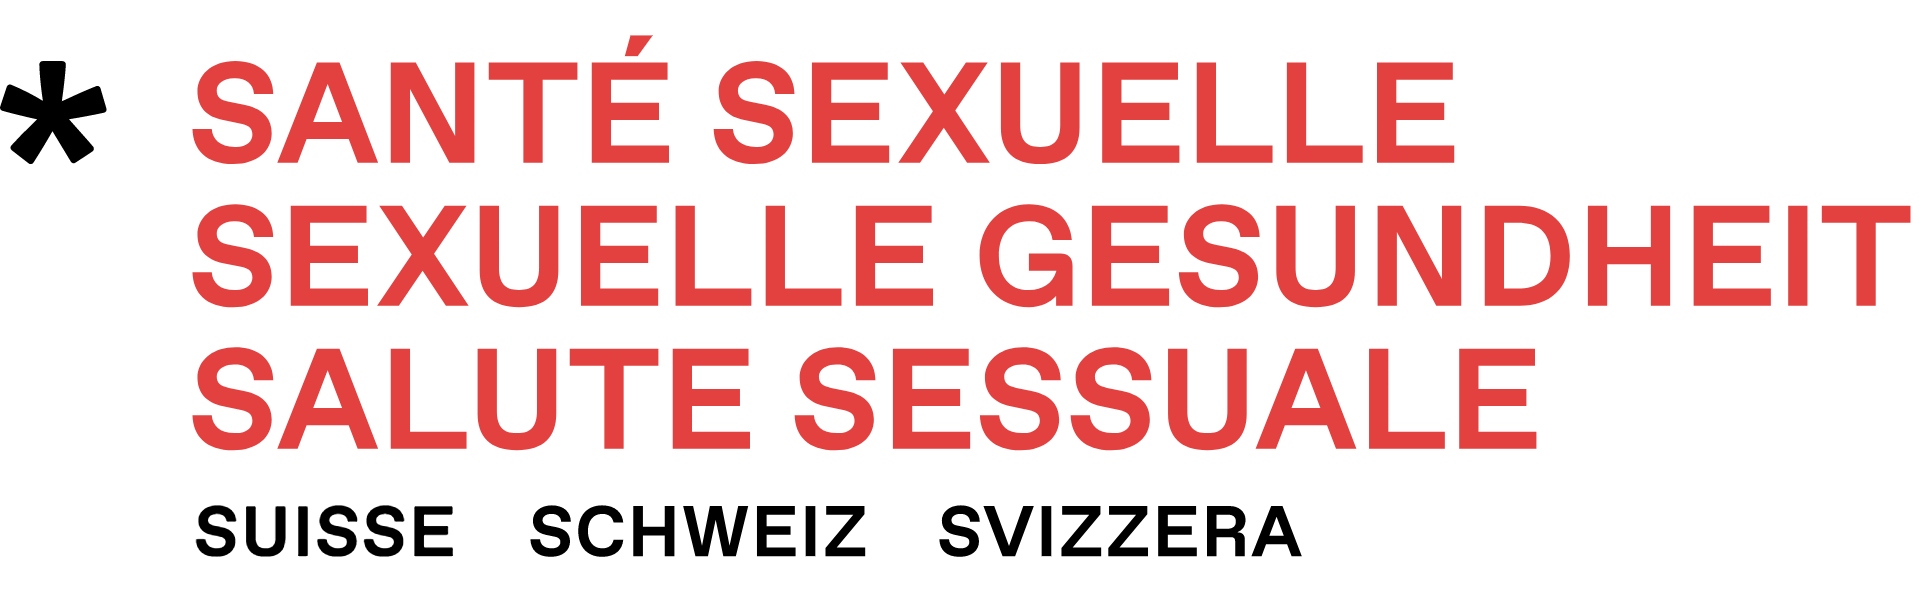 [Image: SEXUAL HEALTH SWITZERLAND, Swiss Foundation for Sexual and Reproductive Health and Rights]